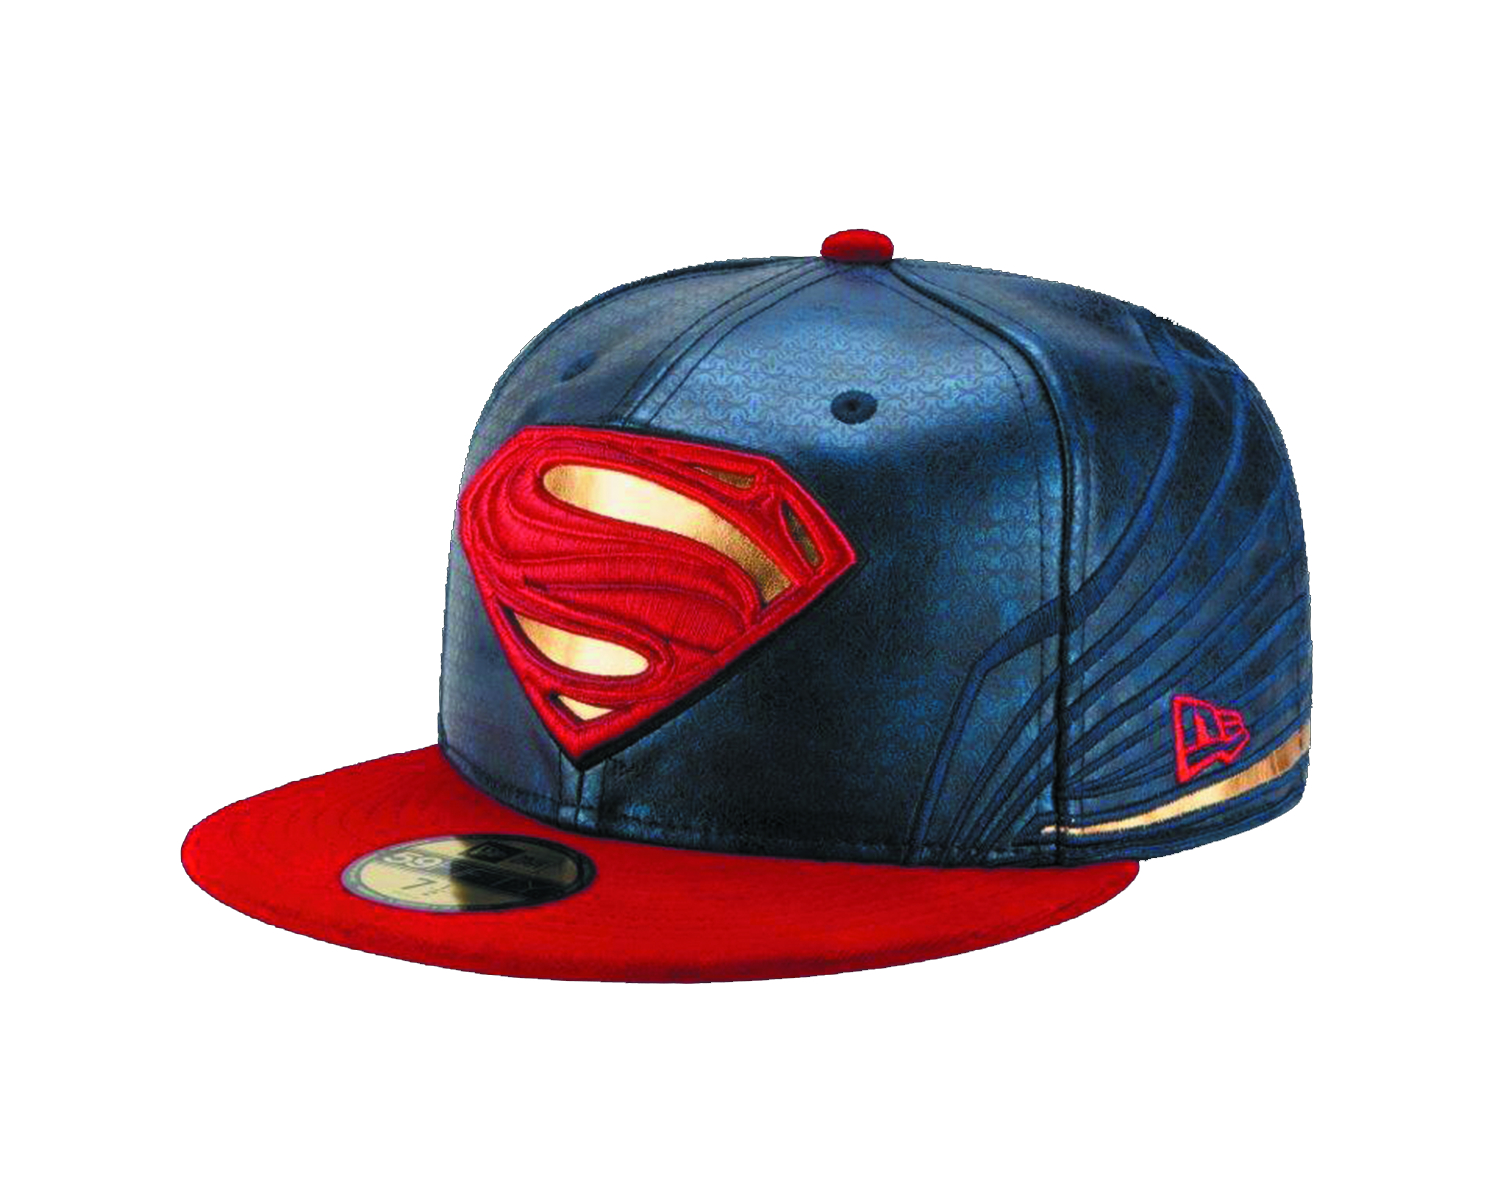 BATMAN V SUPERMAN ARMOR SUPERMAN FITTED CAP SZ 7 1/4